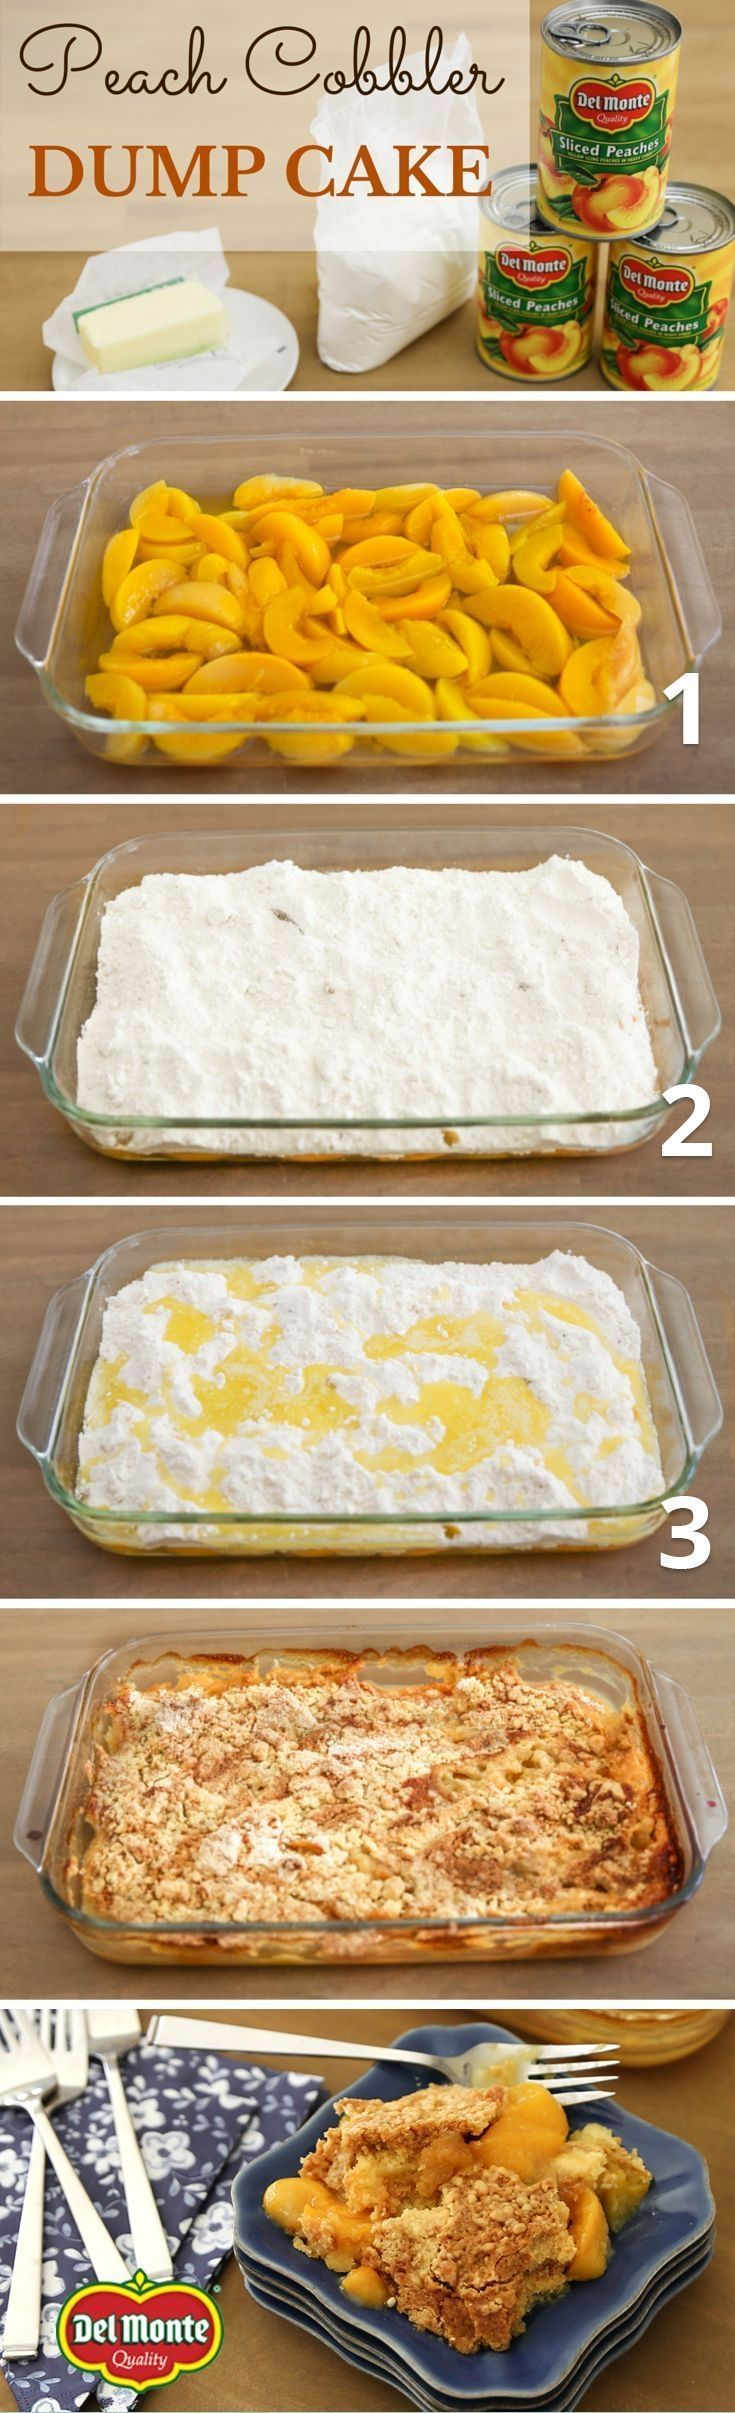 Peach Cobbler Dump Cake: 3 cans (15.25oz.each) Del Monte®️️ Sliced Peaches in Heavy Syrup, 1 pkg. yellow cake mix, ½ cup butter, melted